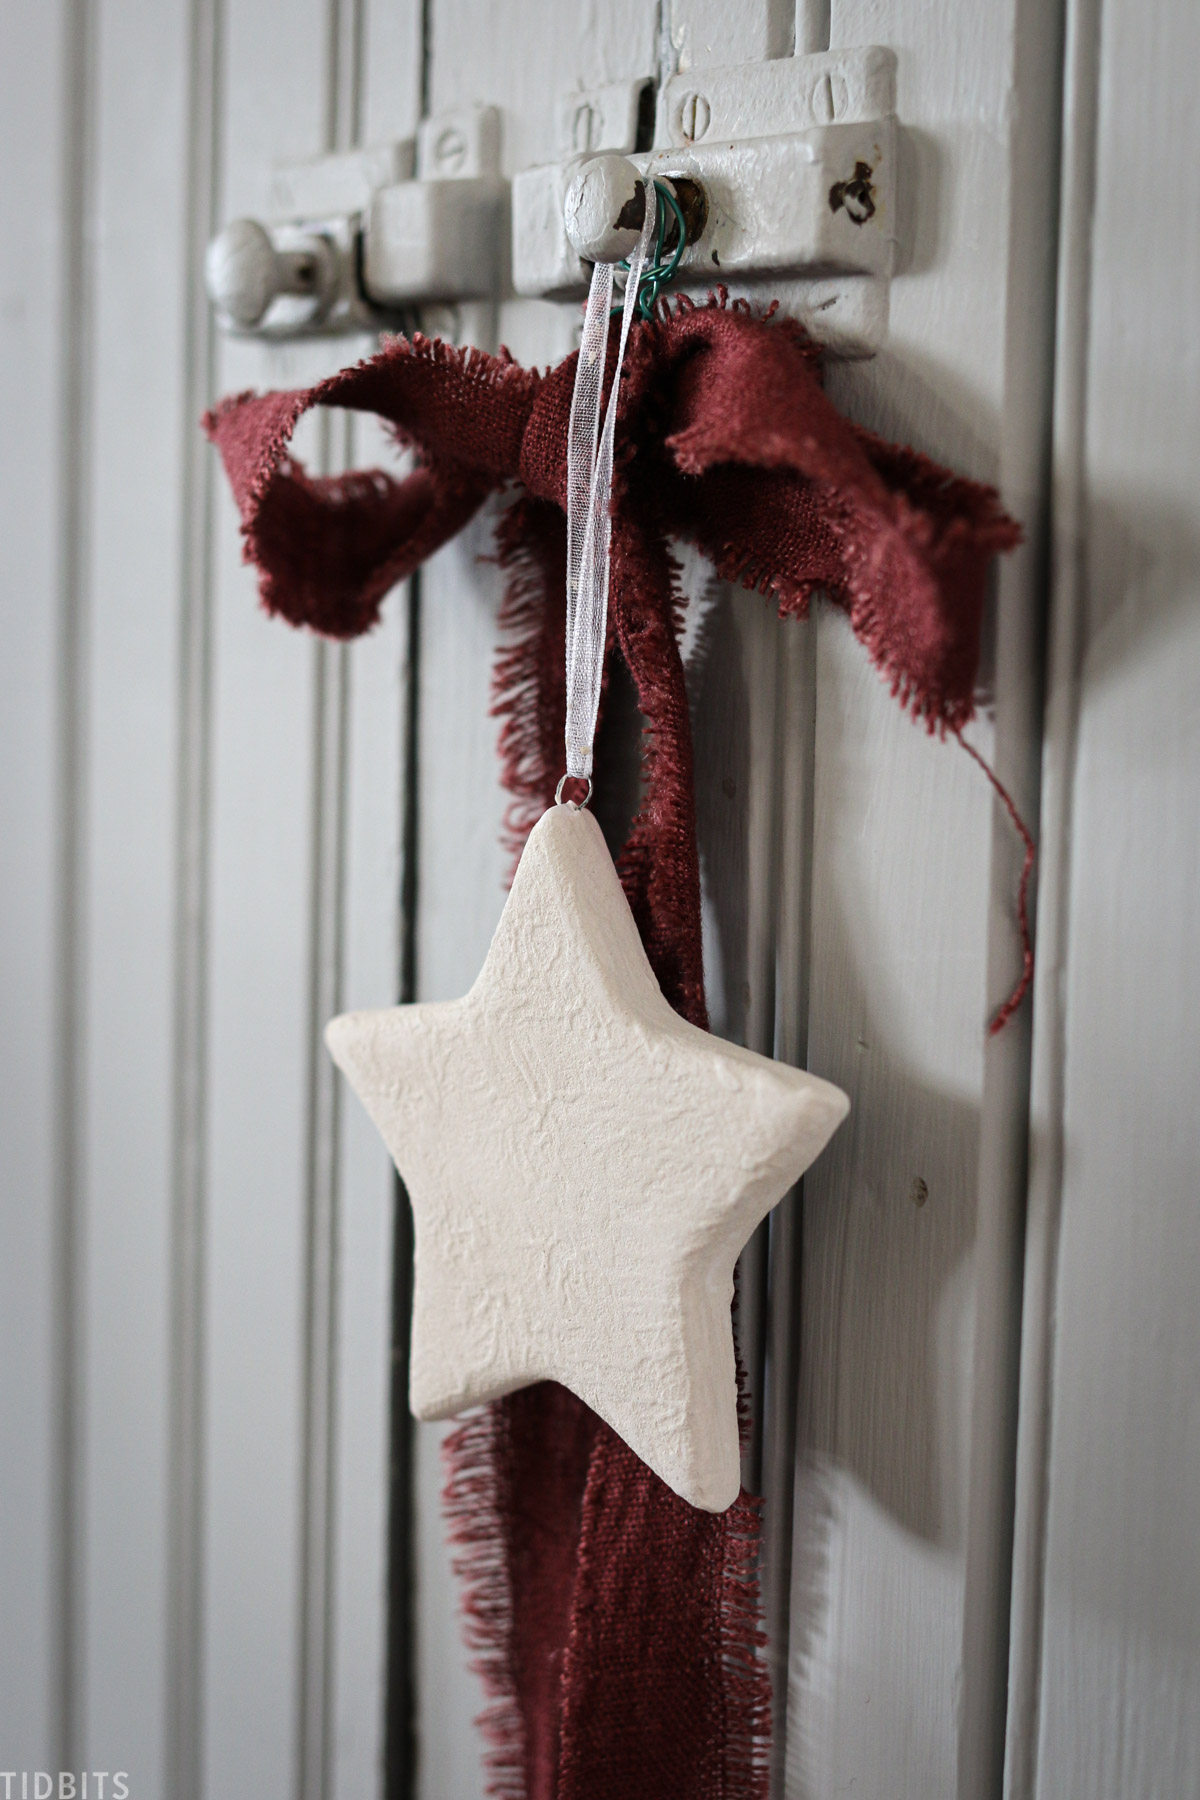 ceramic star hanging with red ribbon off a handle on a cabinet